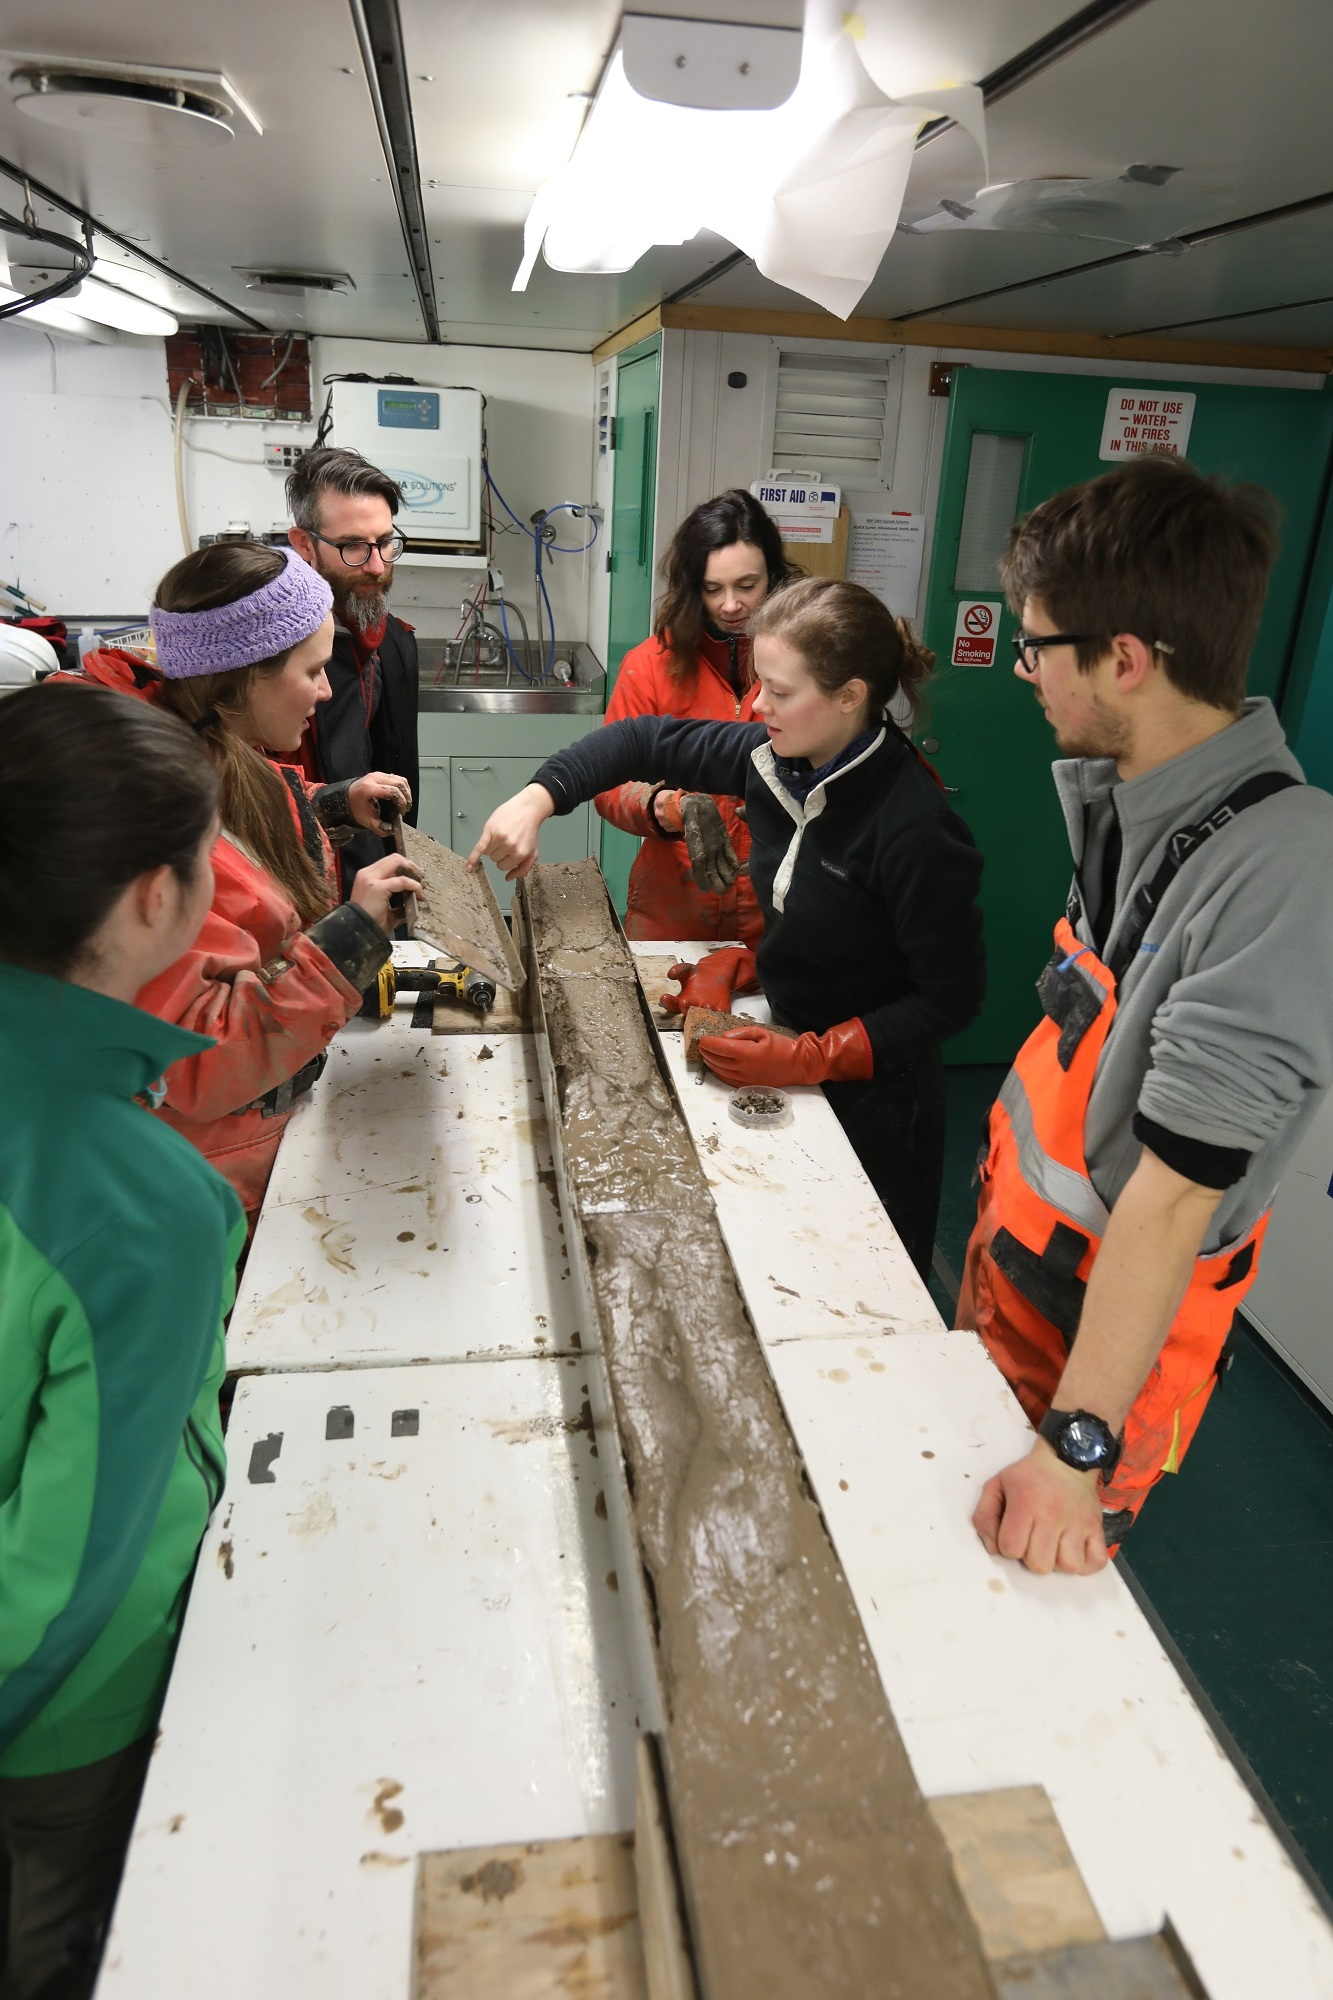 Meghan Spoth (M.S. student from the University of Maine who is with GHC) and the THOR team get their first look at a Kasten core that was collected at night (see Hammertime).